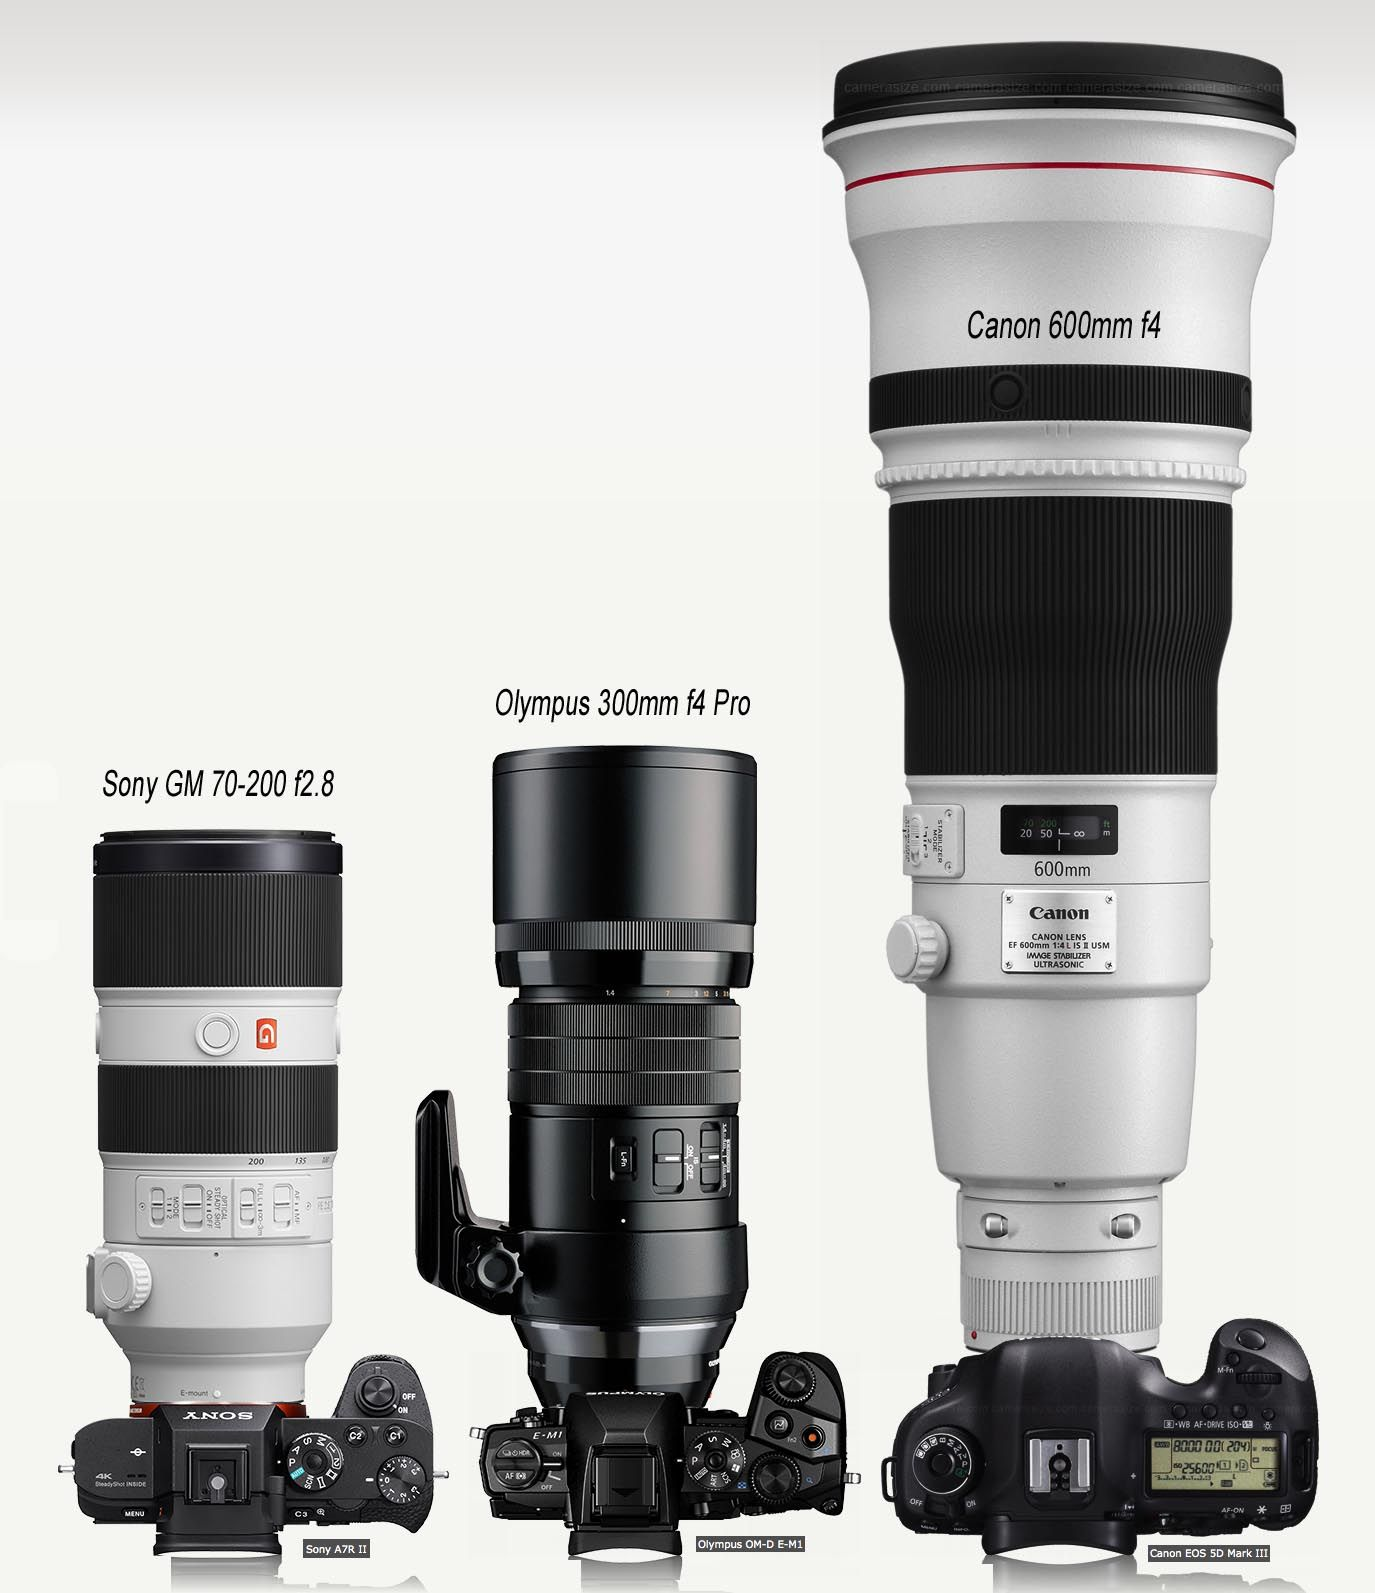 The Olympus 300mm Pro F 4 0 Official Lens Review By Craig Litten On Www Stevehuffphoto Com Vintage Cameras Photography Lens Cannon Camera